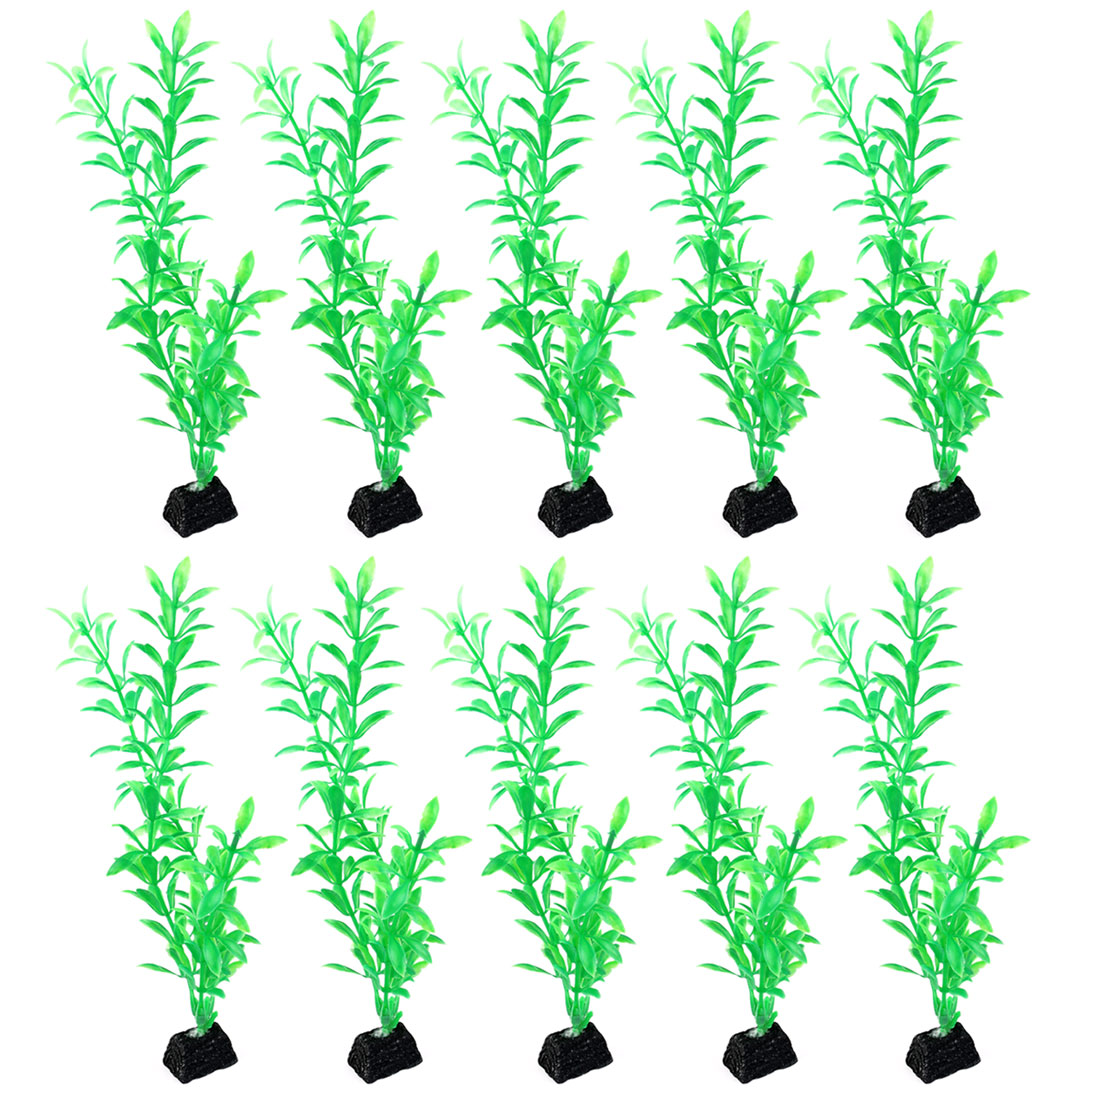 "10 PCS 10.3"" Height Green Plastic Artificial Underwater Grass Plant Decoration for Fish Tank Fishbowl"